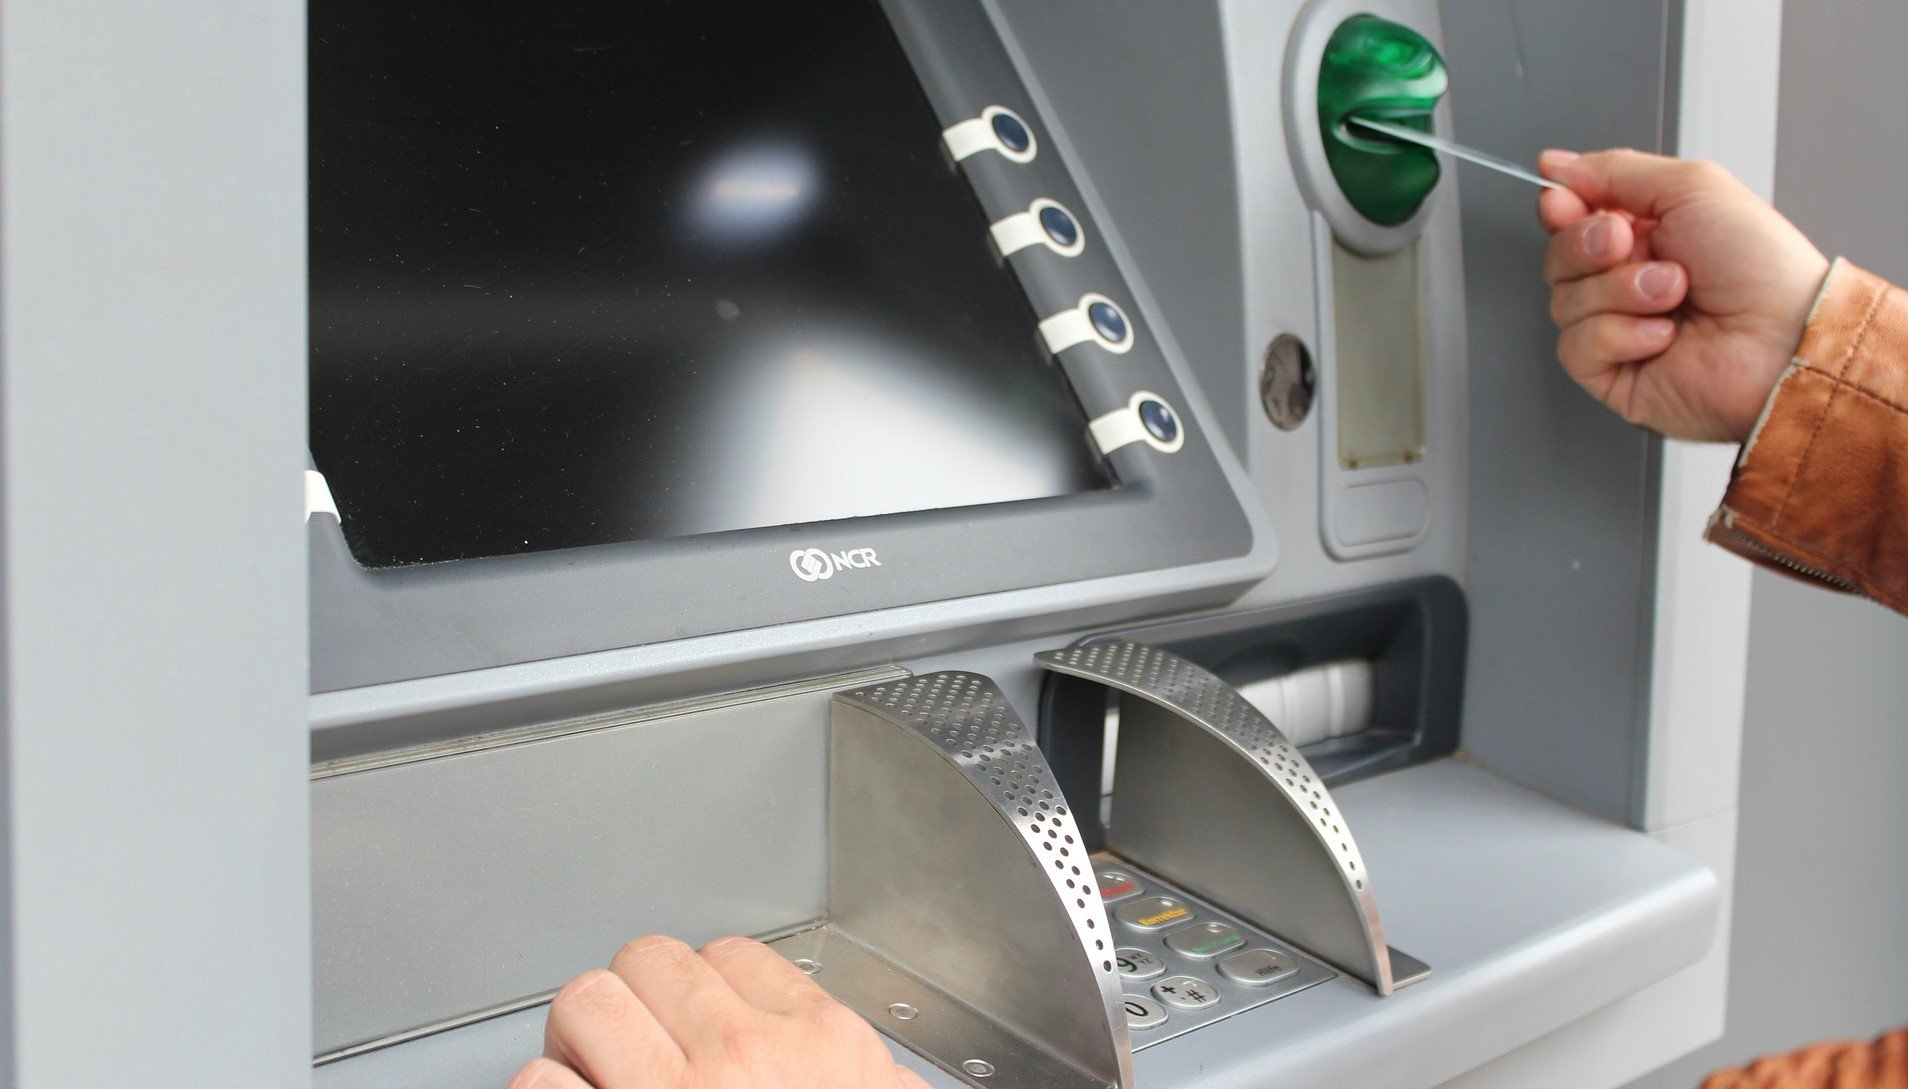 14 Best Checking Accounts To Avoid International ATM Fees [2019]